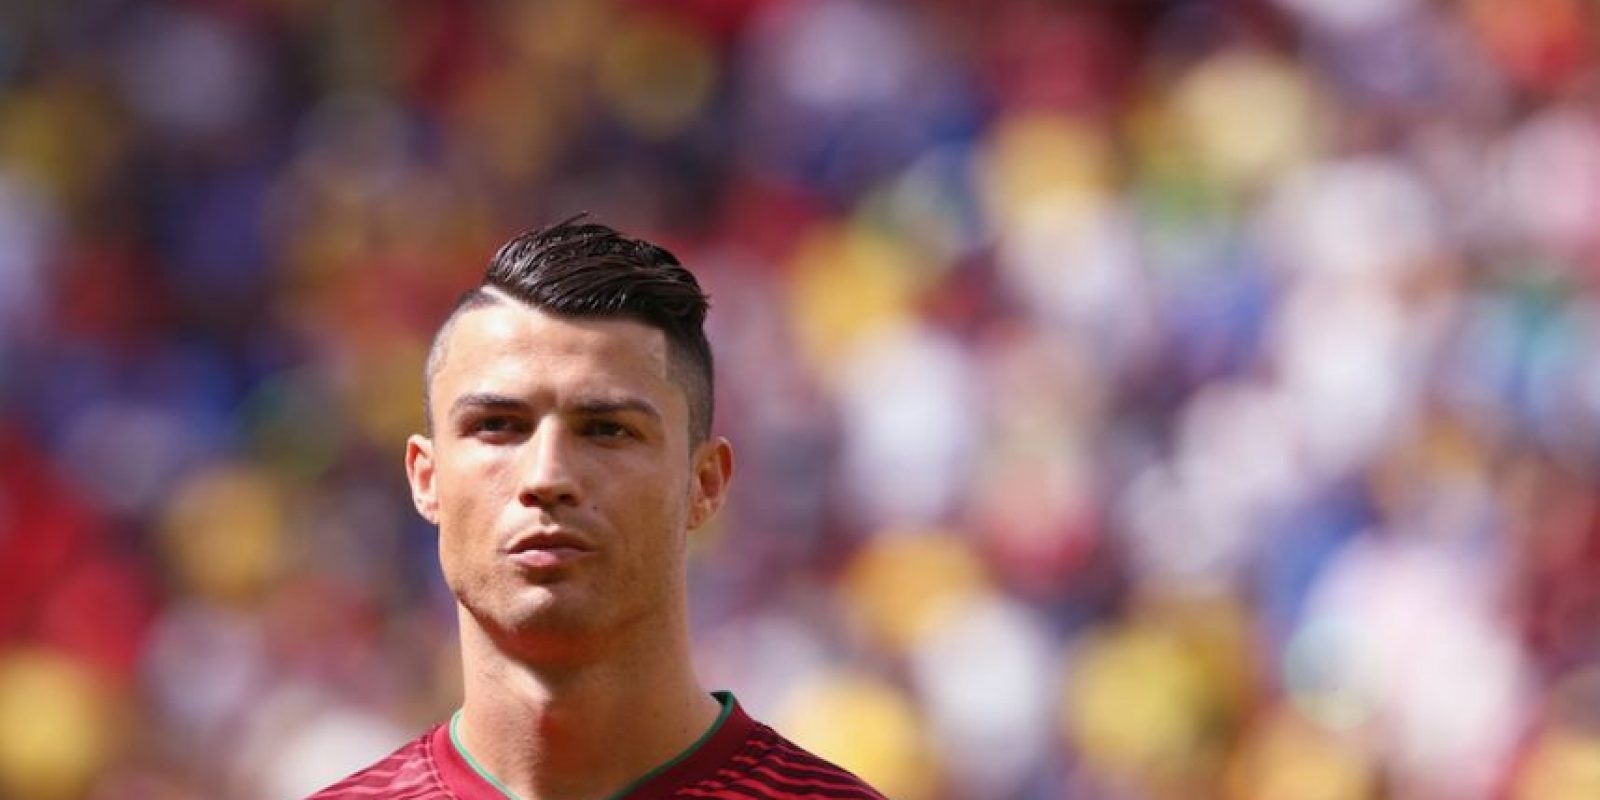 Cristiano Ronaldo (Portugal) Foto: Getty Images